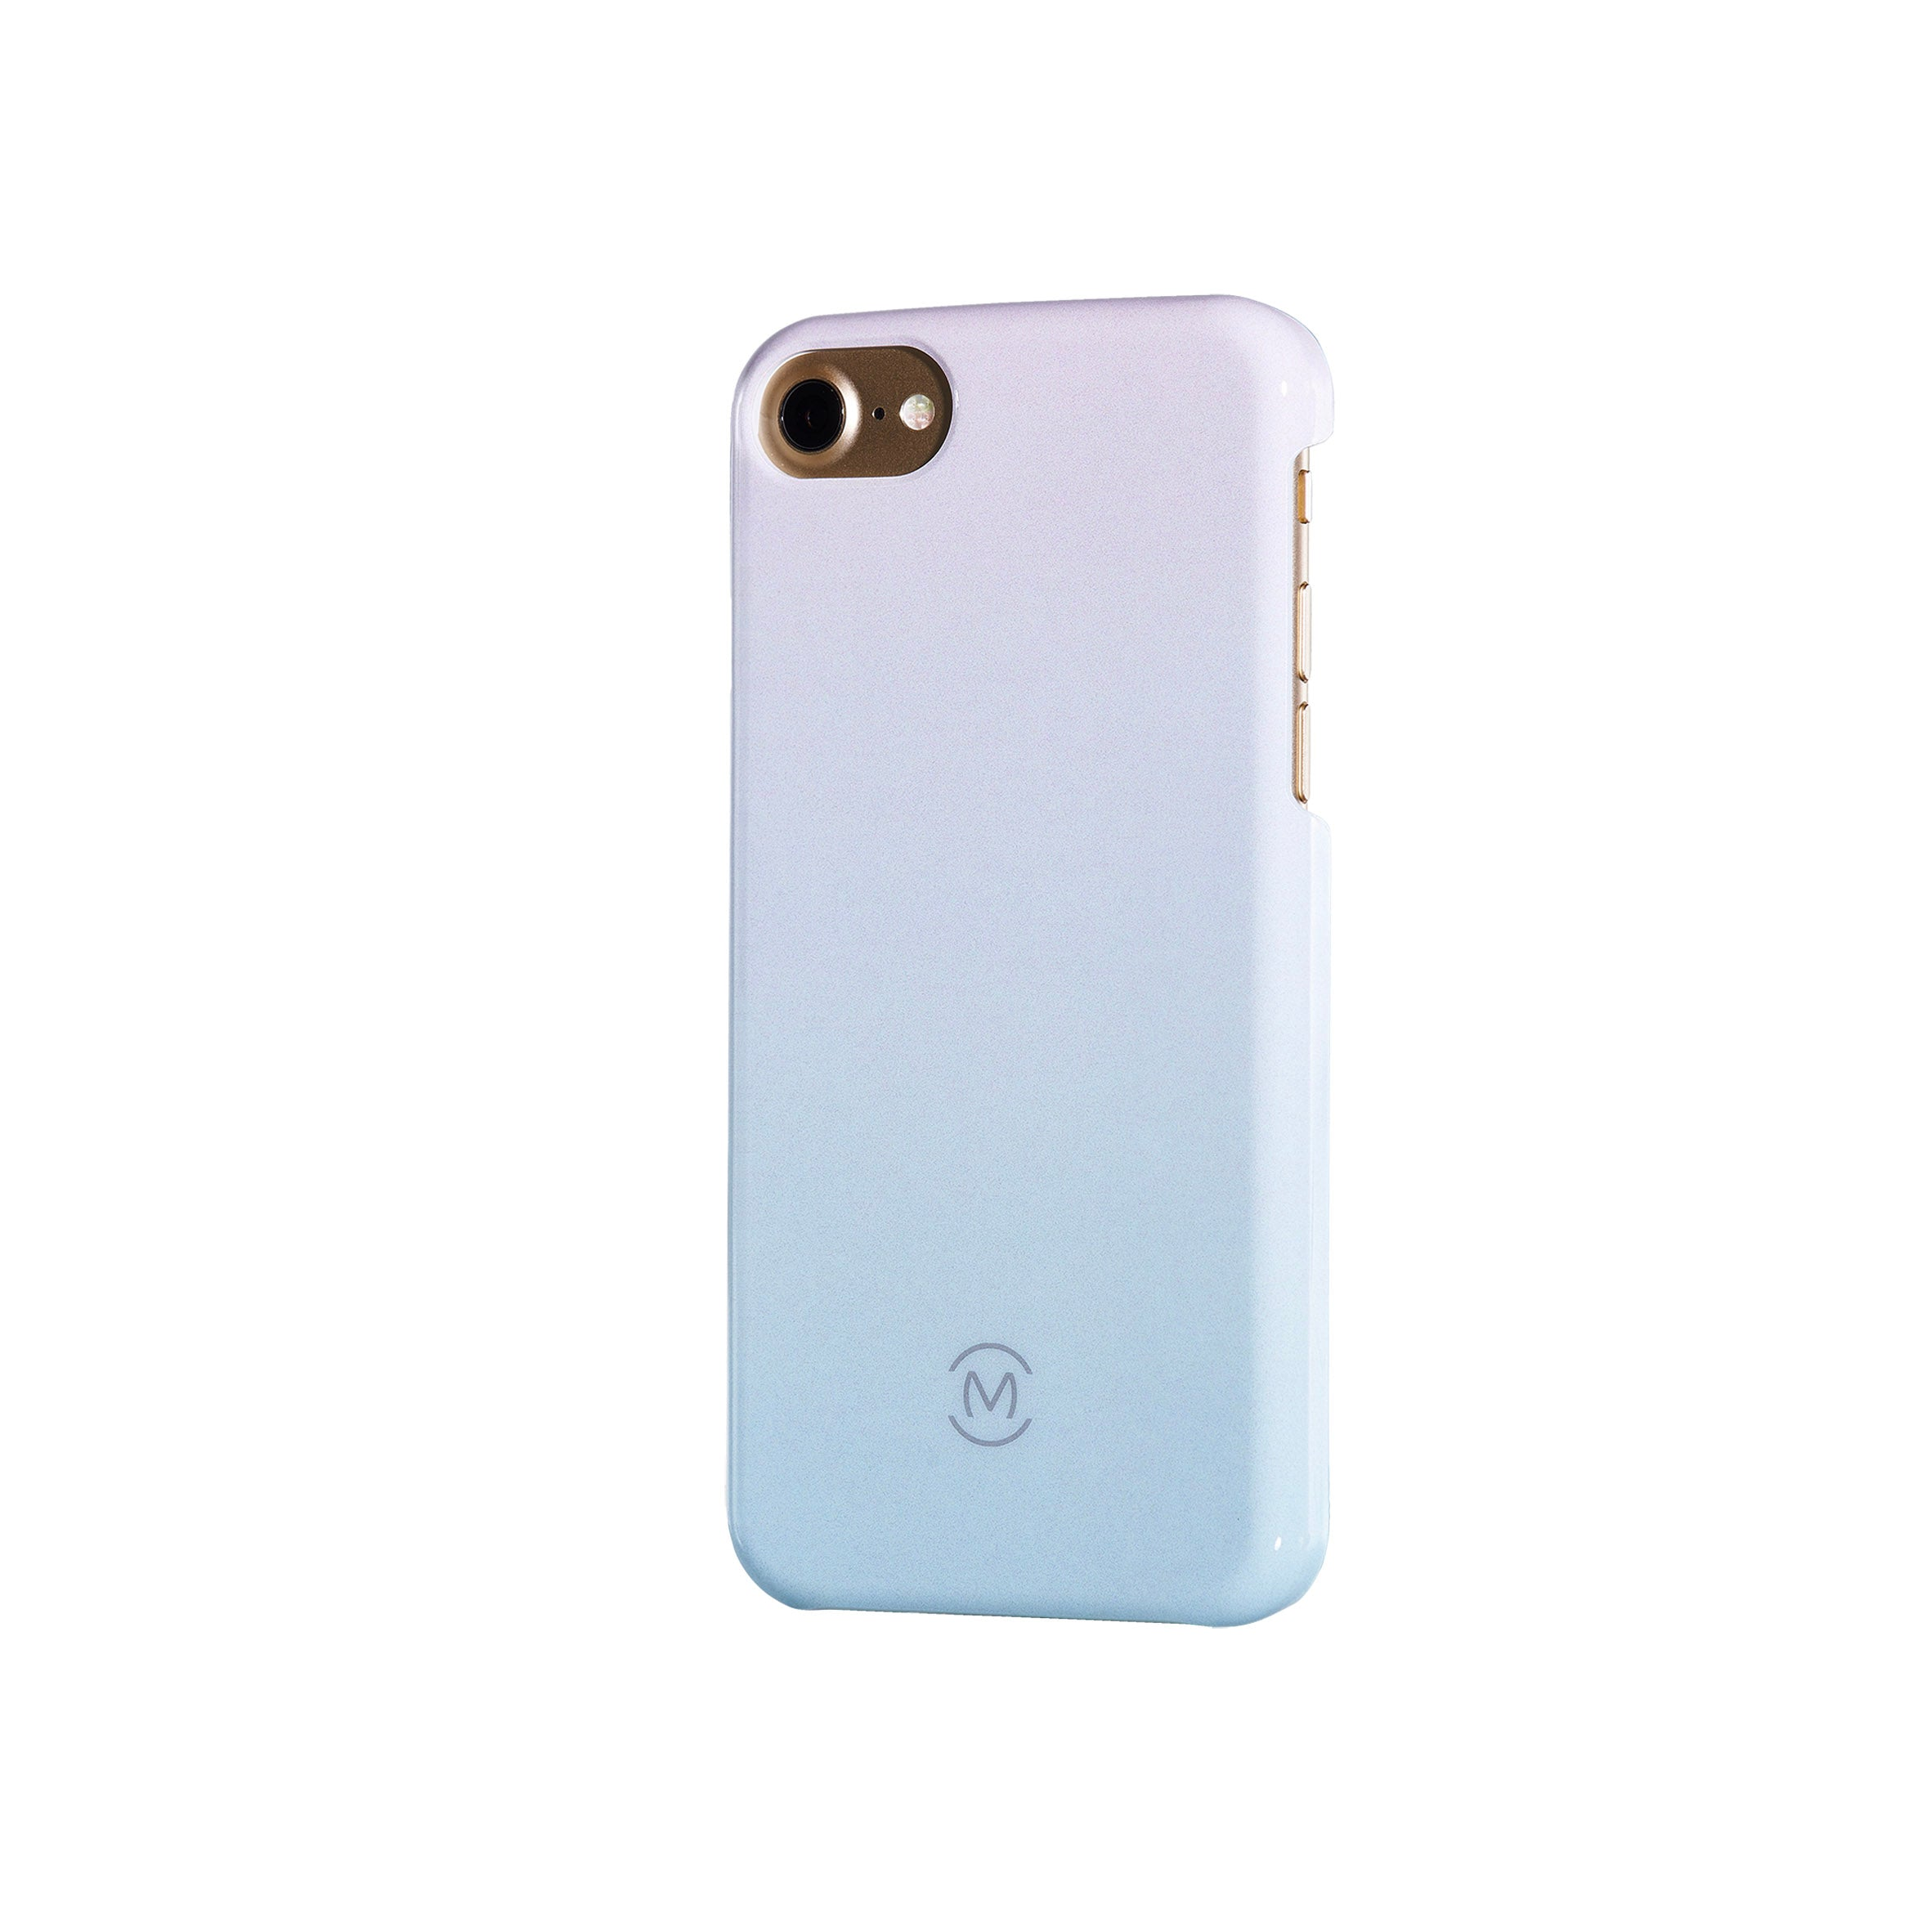 Icy Blue Gradient Sea Ice Recyclable Phone Case by Movement for iPhone 8, iPhone 7, iPhone 6s, and iPhone 6 (Right)